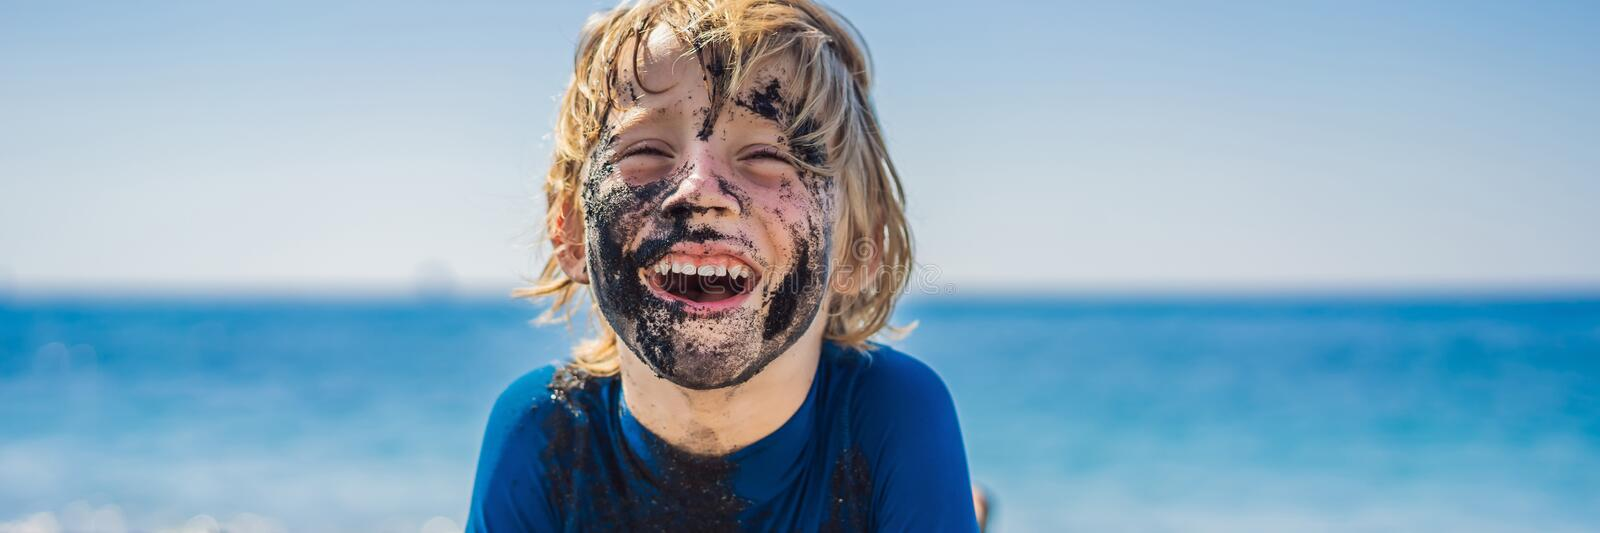 BANNER, LONG FORMAT Black Friday concept. Smiling boy with dirty Black face sitting and playing on black sand sea beach stock photography